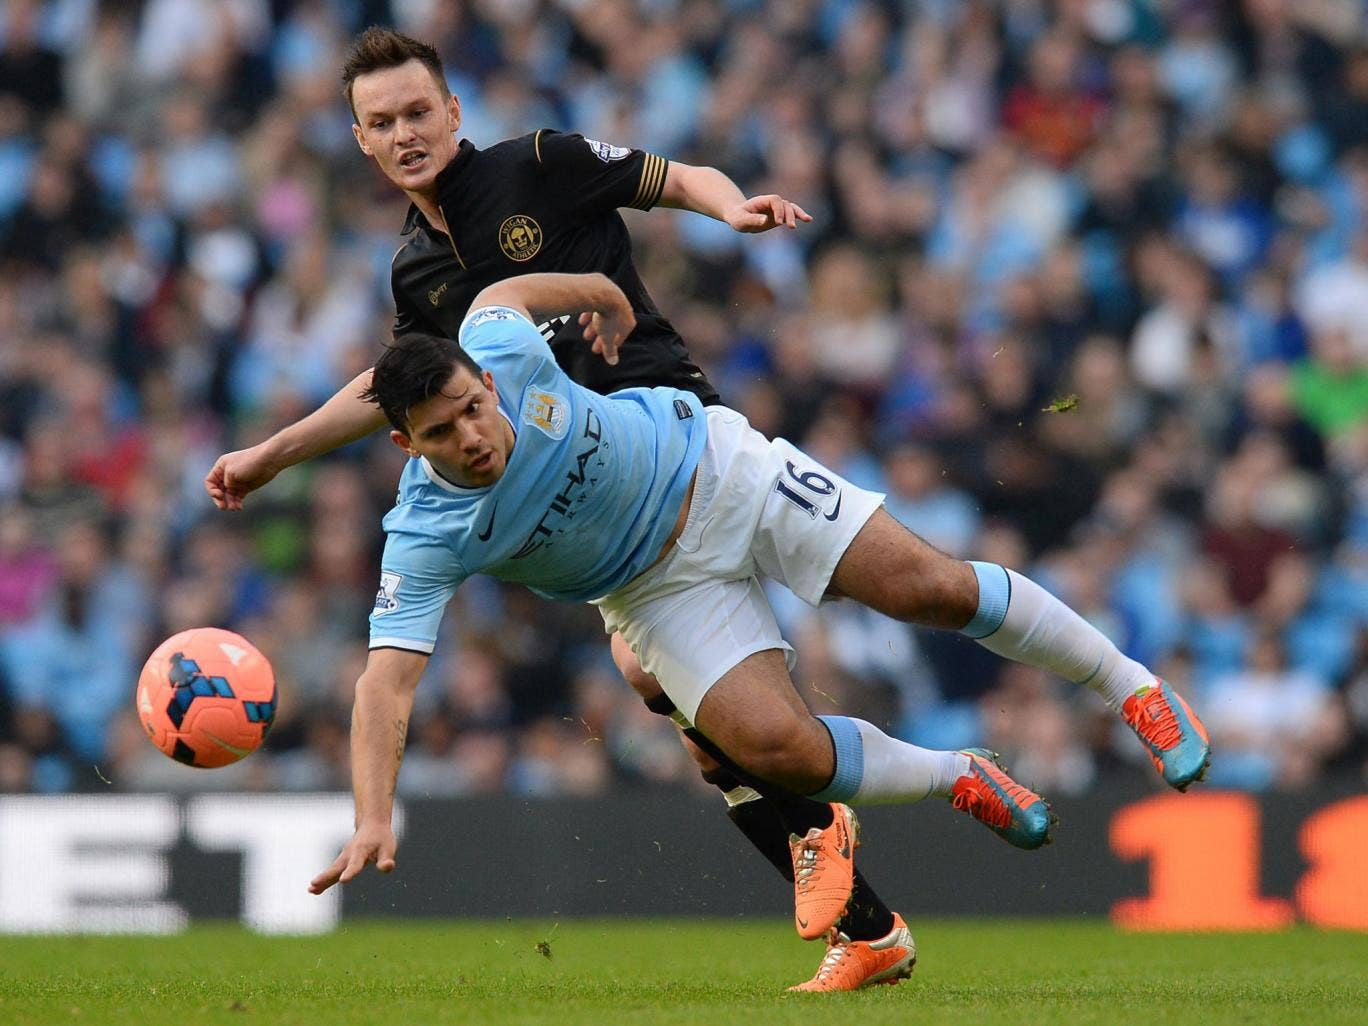 Josh McEachran tackles Manchester City's Sergio Aguero in Wigan's shock FA Cup quarterfinal victory